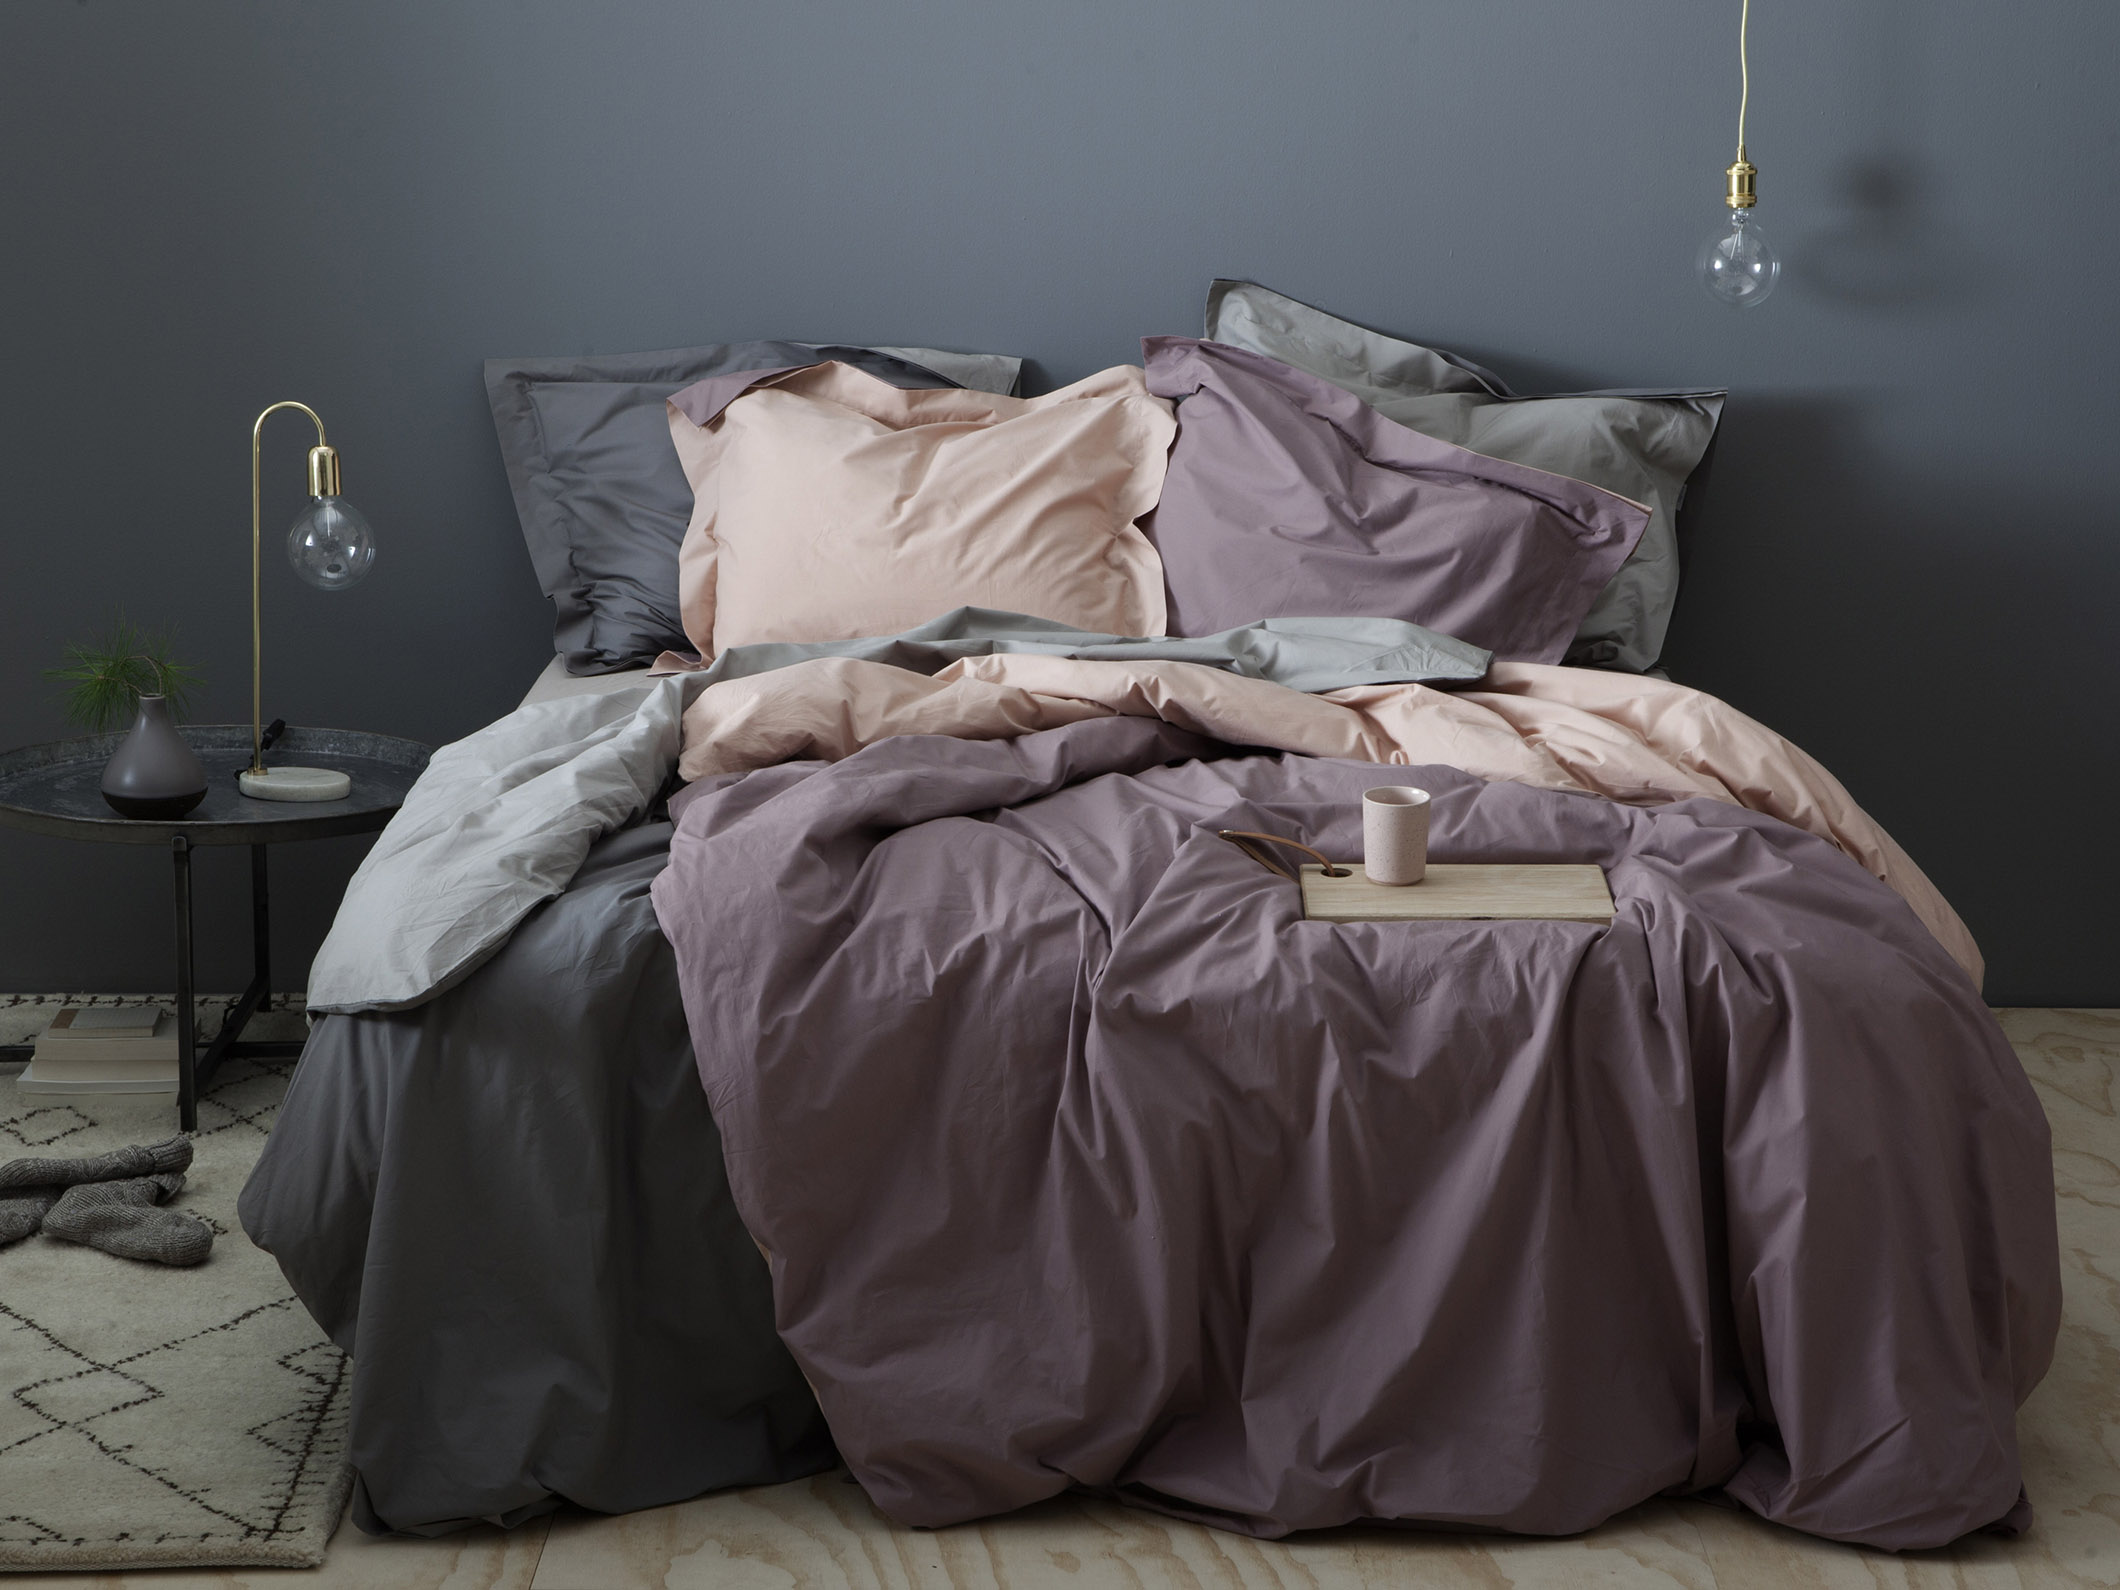 Bedding by Wehkamp